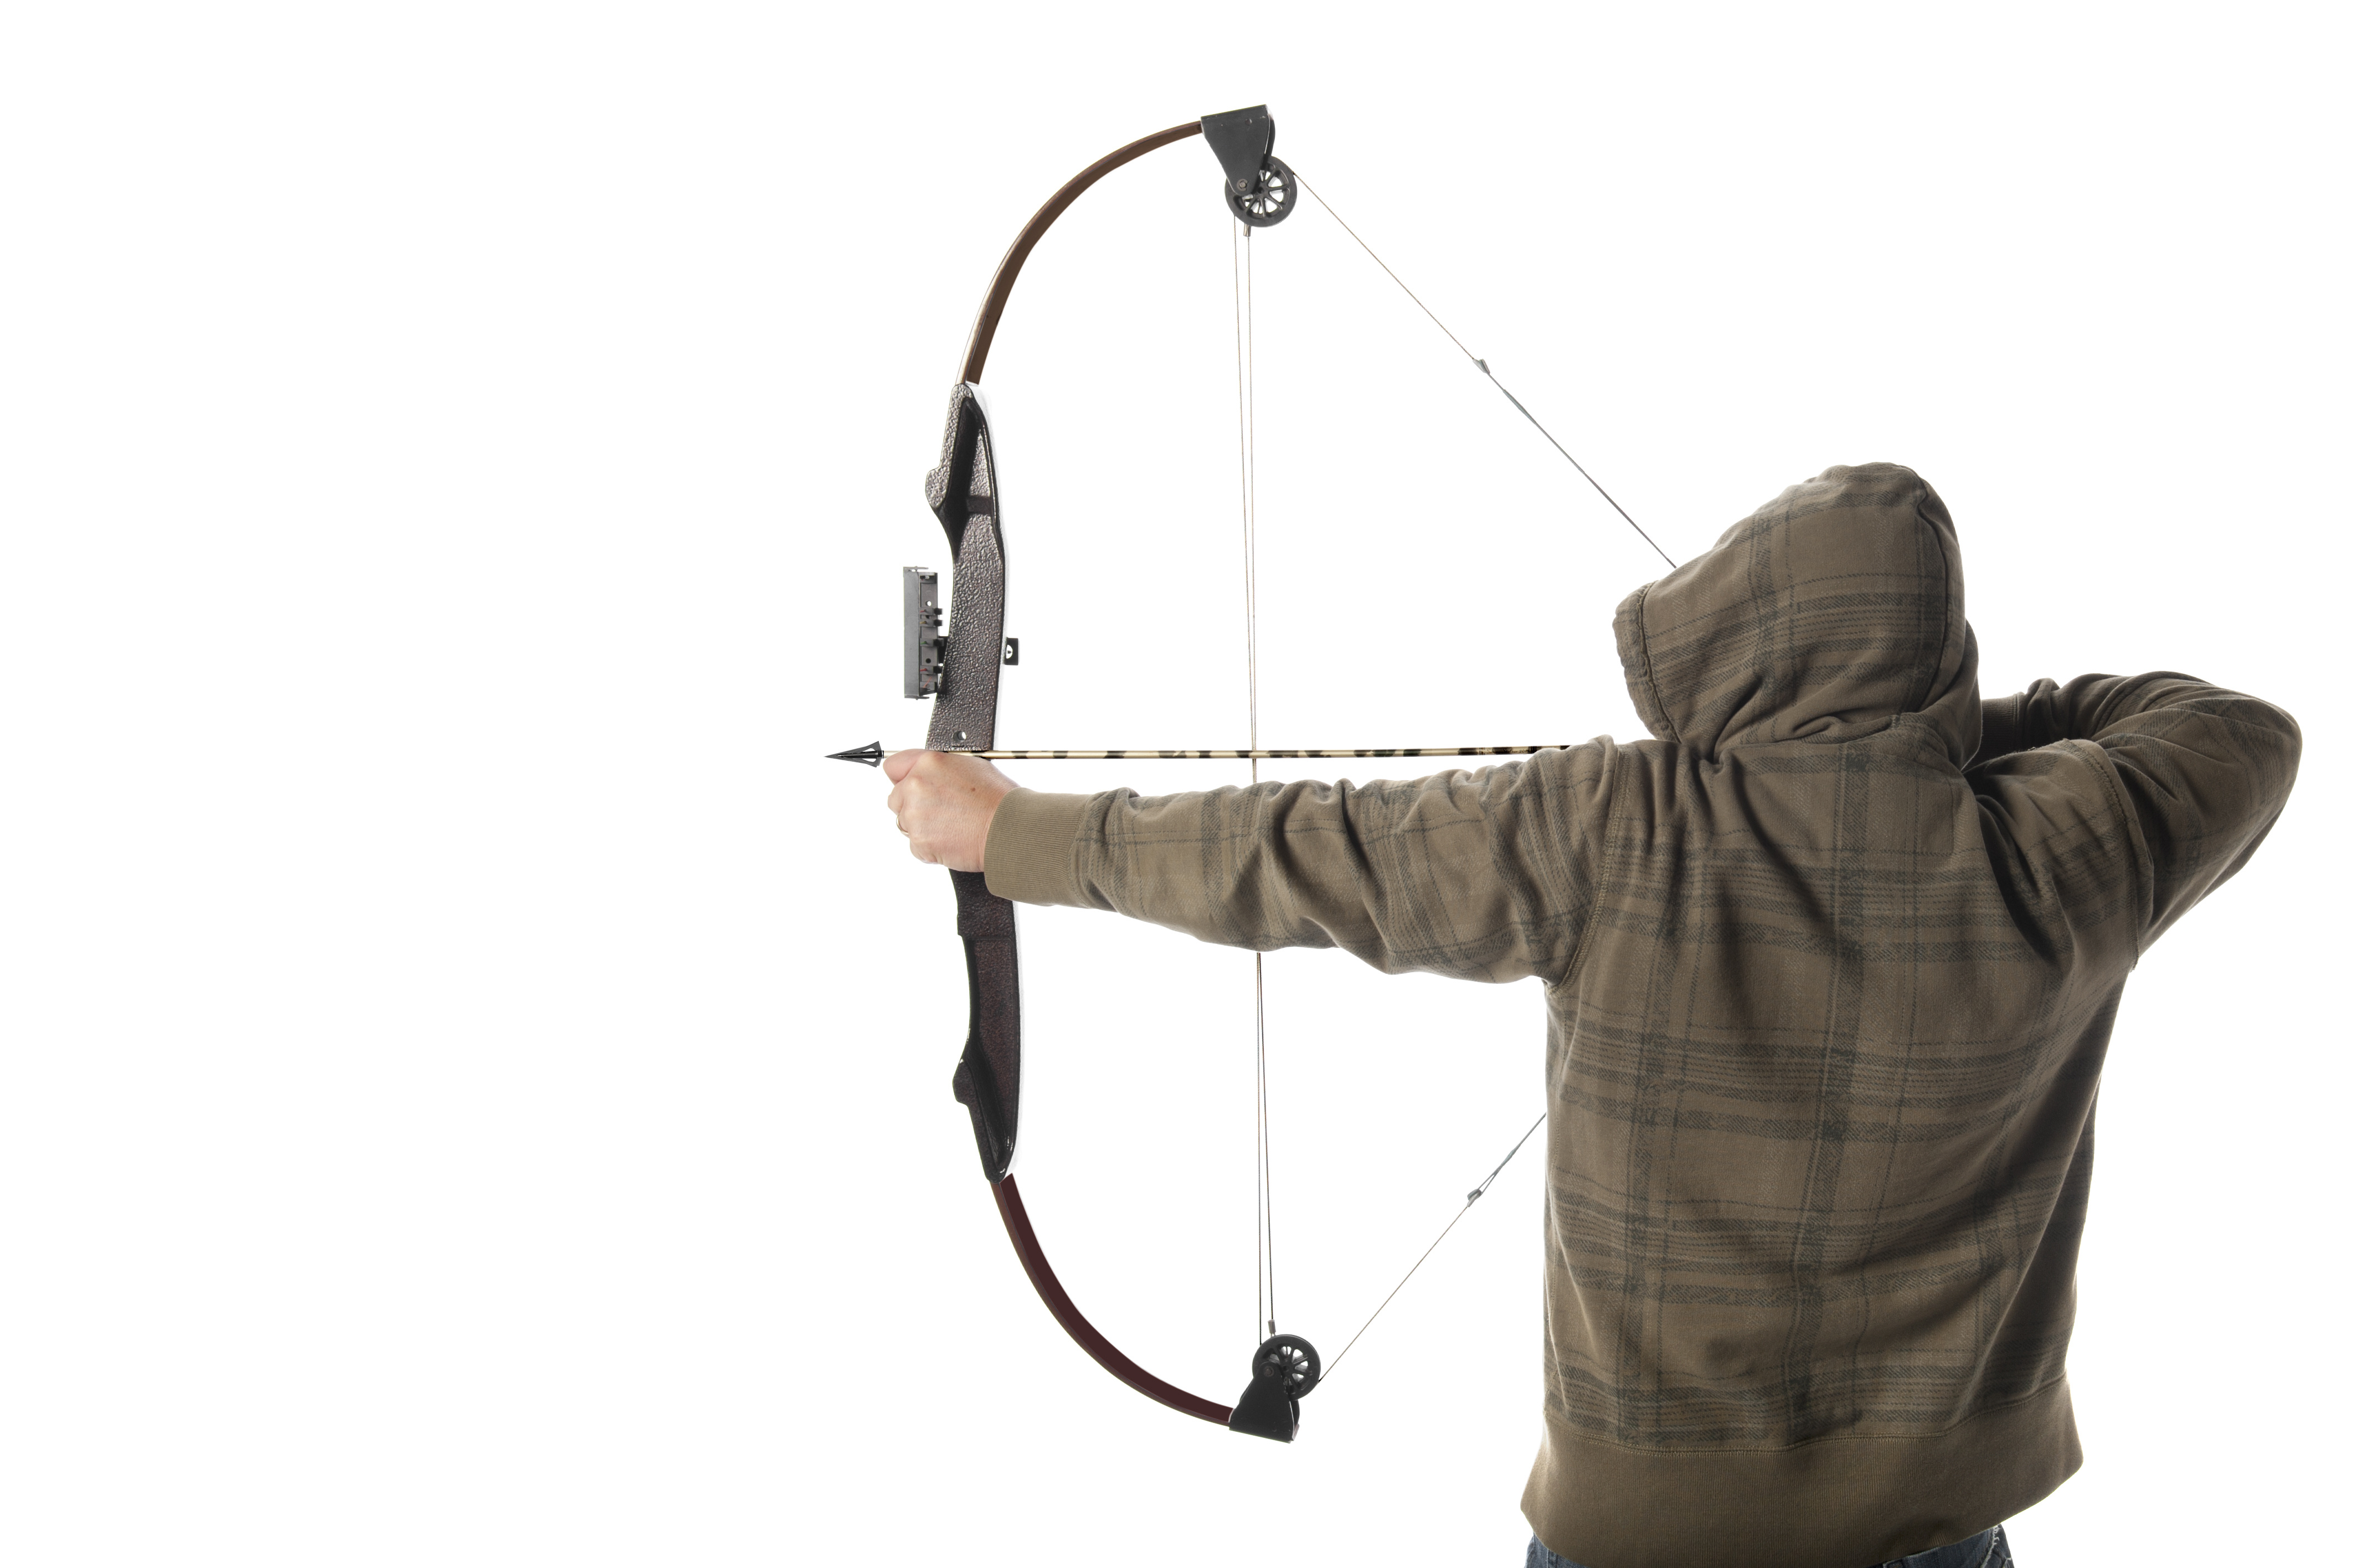 How To Shoot A Compound Bow With A Release